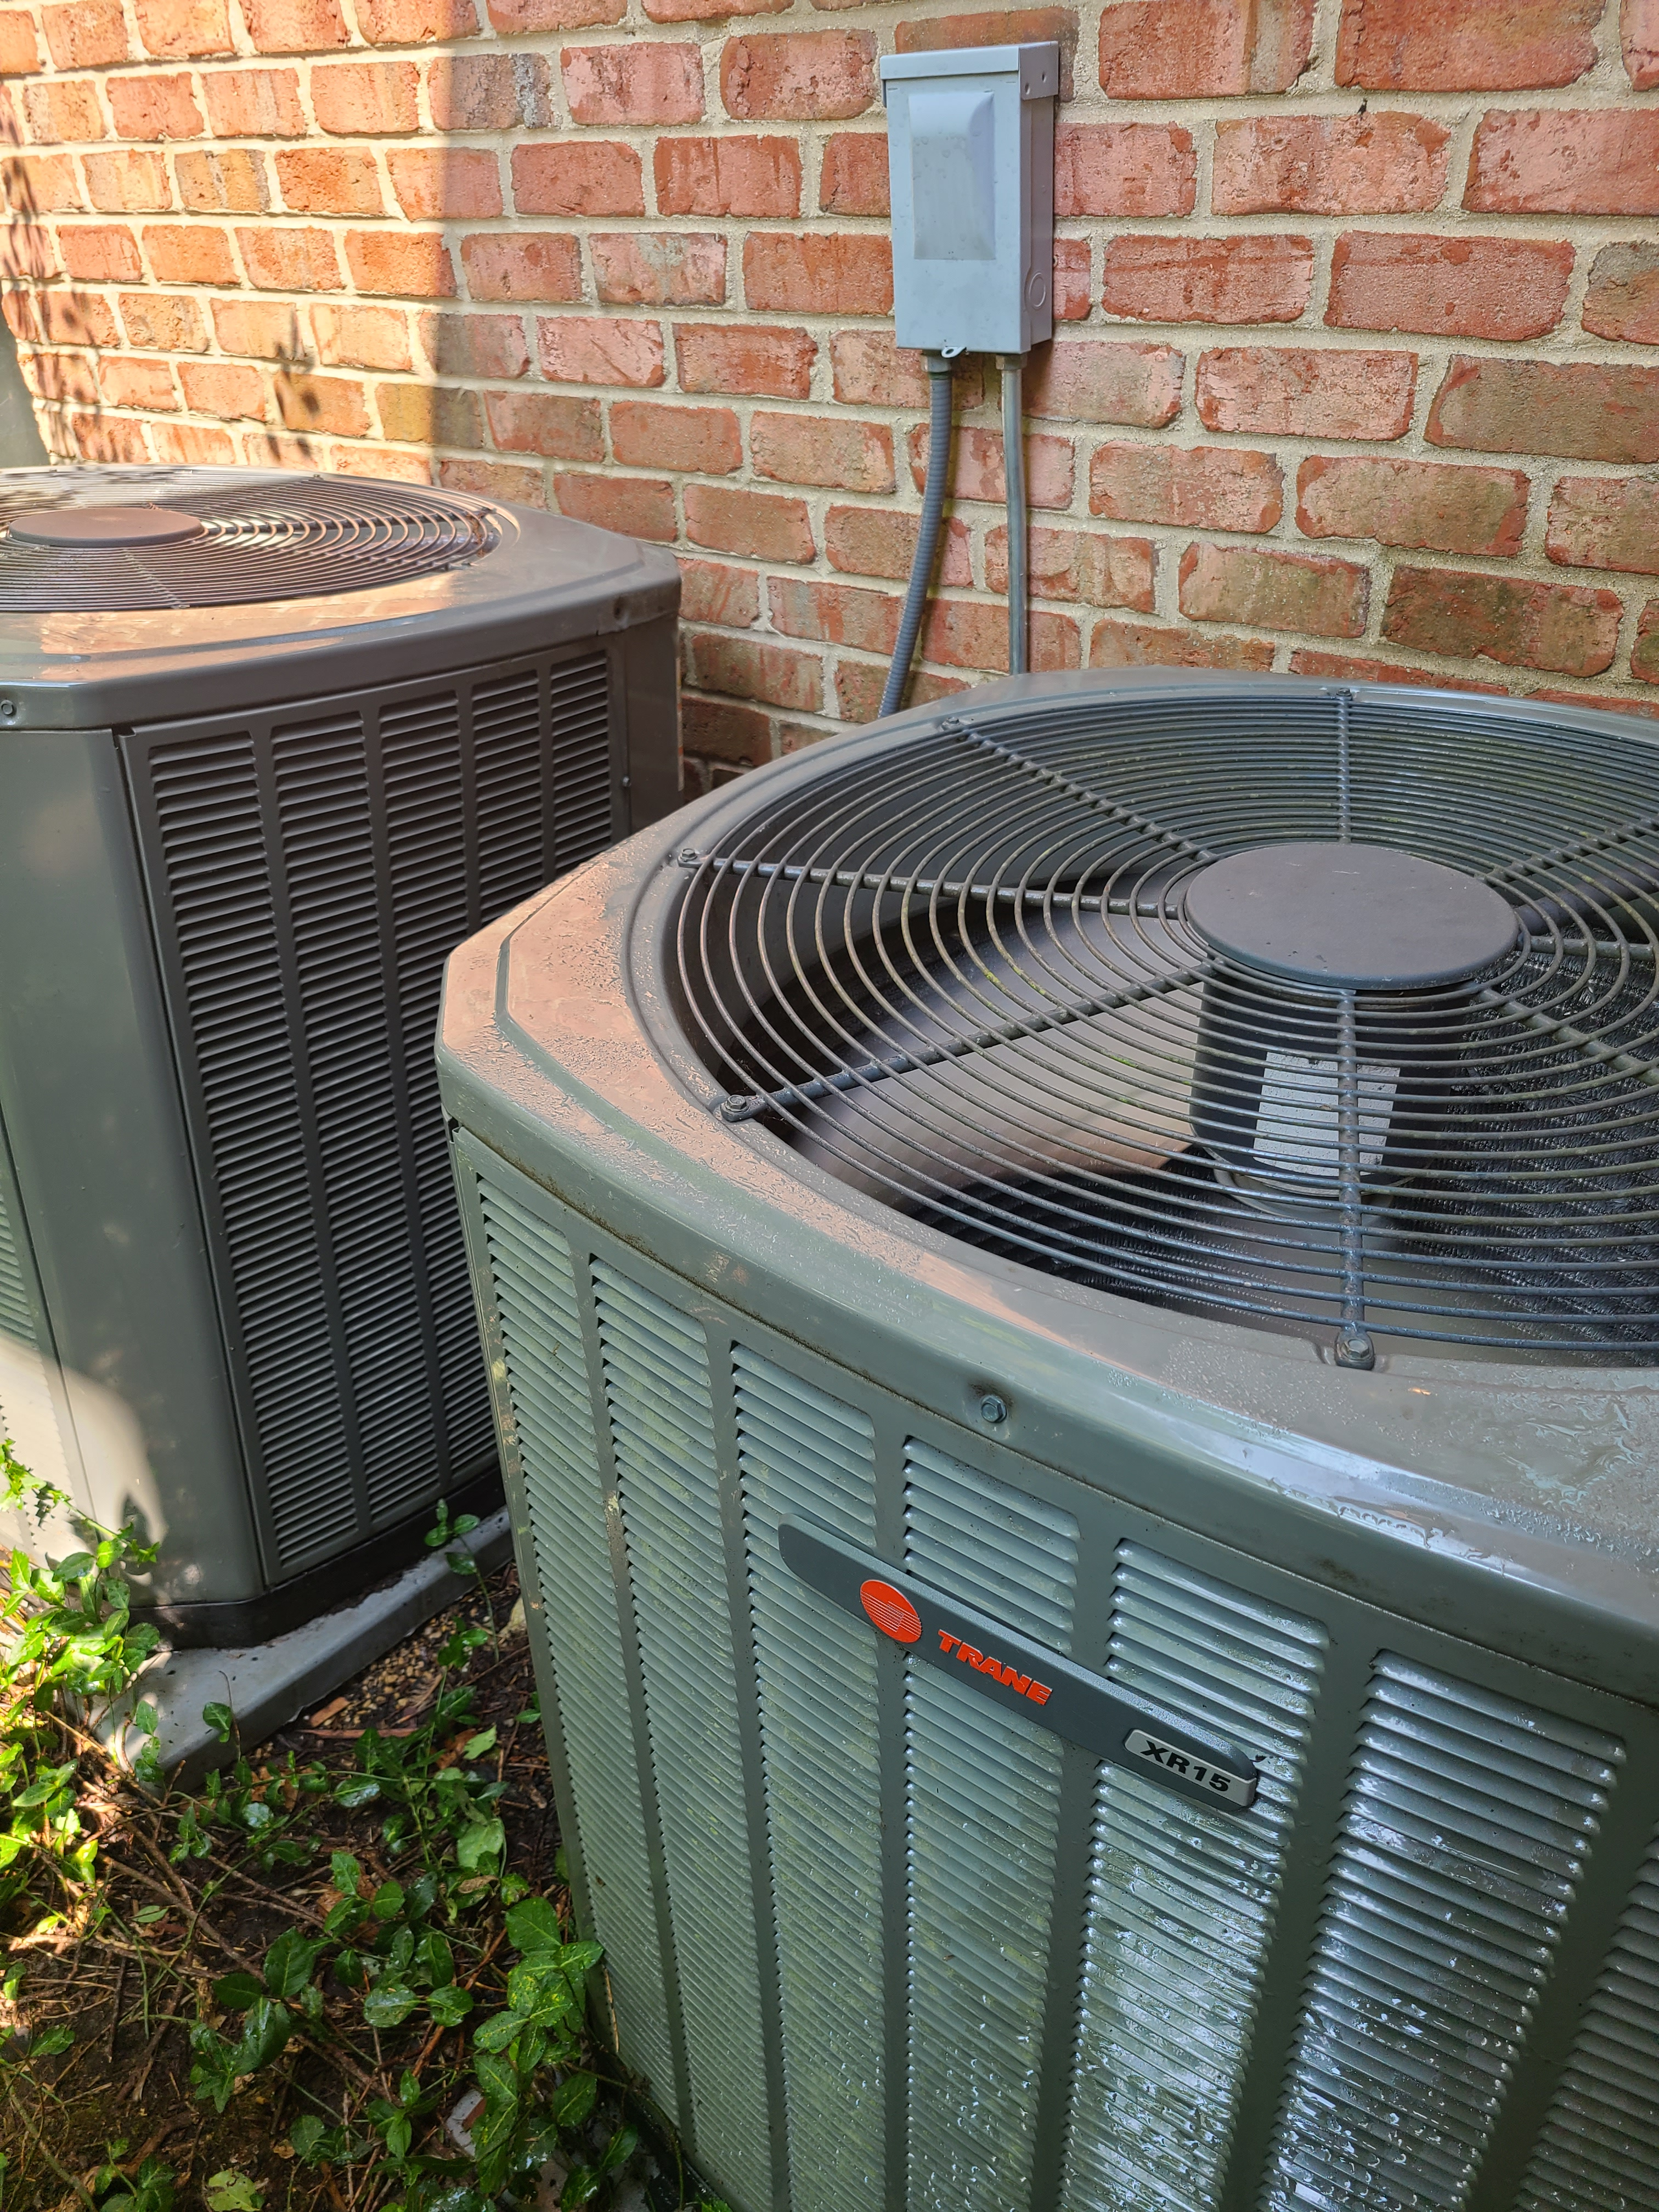 Performed preventative maintenance on two Trane American Standard R410A systems to extend the life of the units. Checked voltage, amperage, temperatures, pressures, and microfarads. Washed both condenser coils thoroughly.